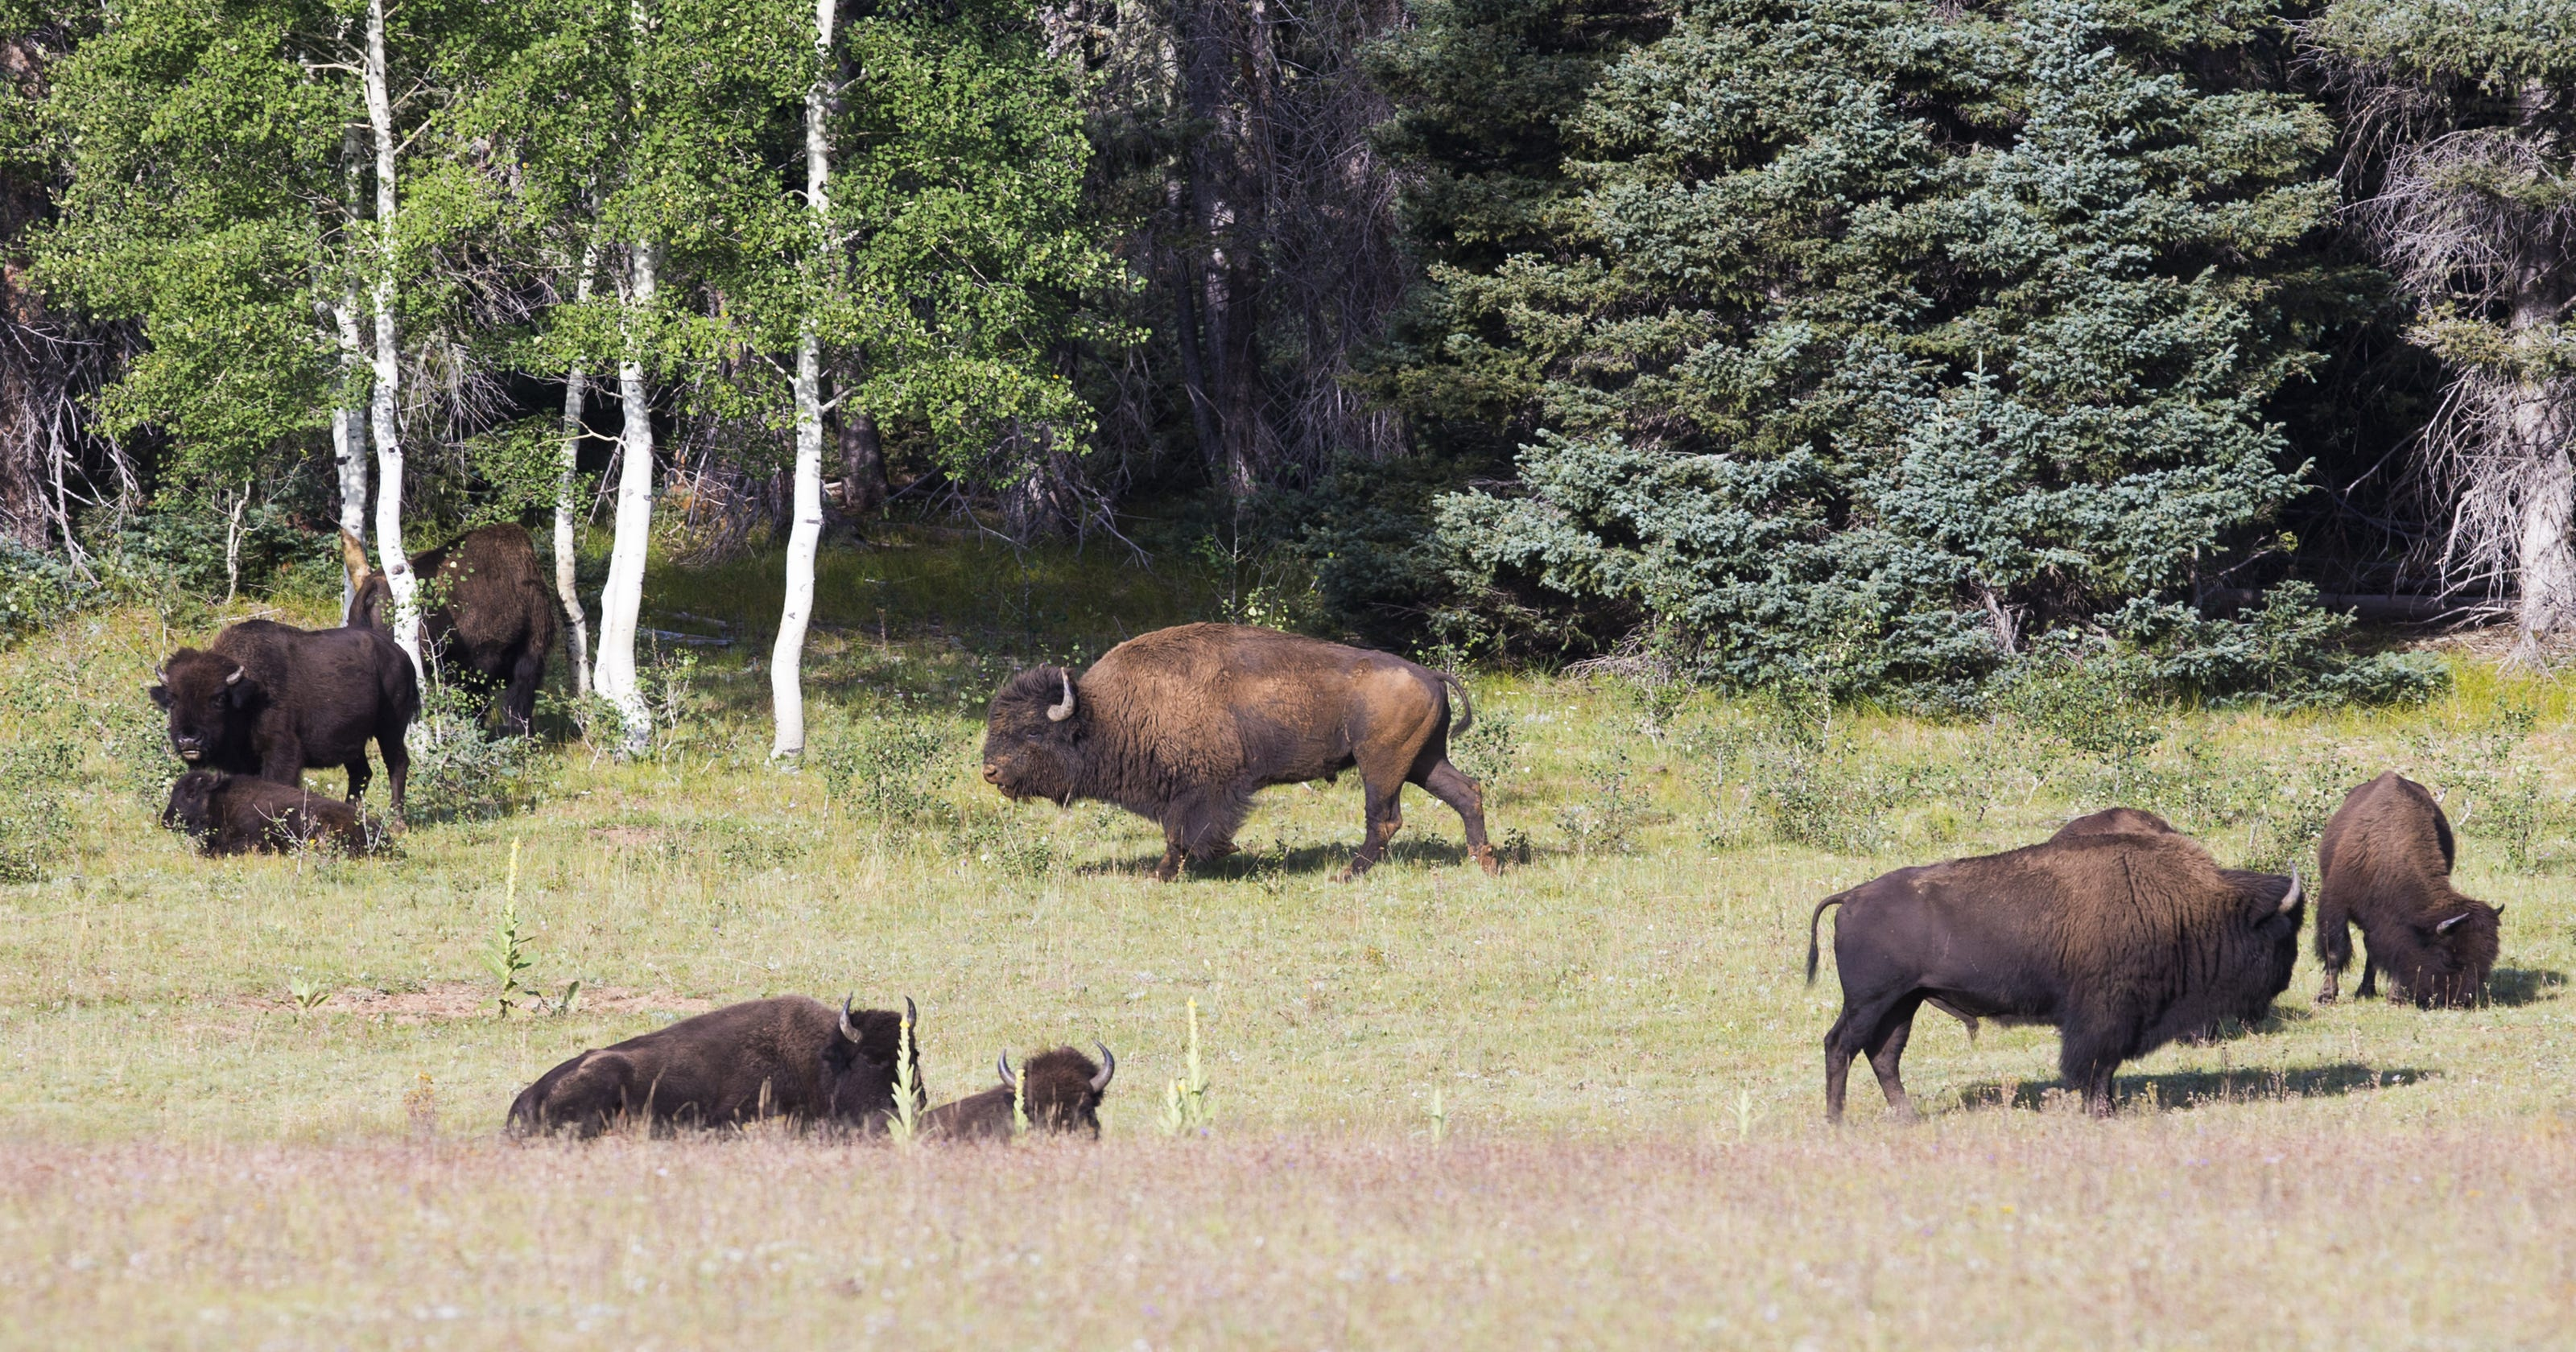 Bison in Arizona? The story behind Grand Canyon National